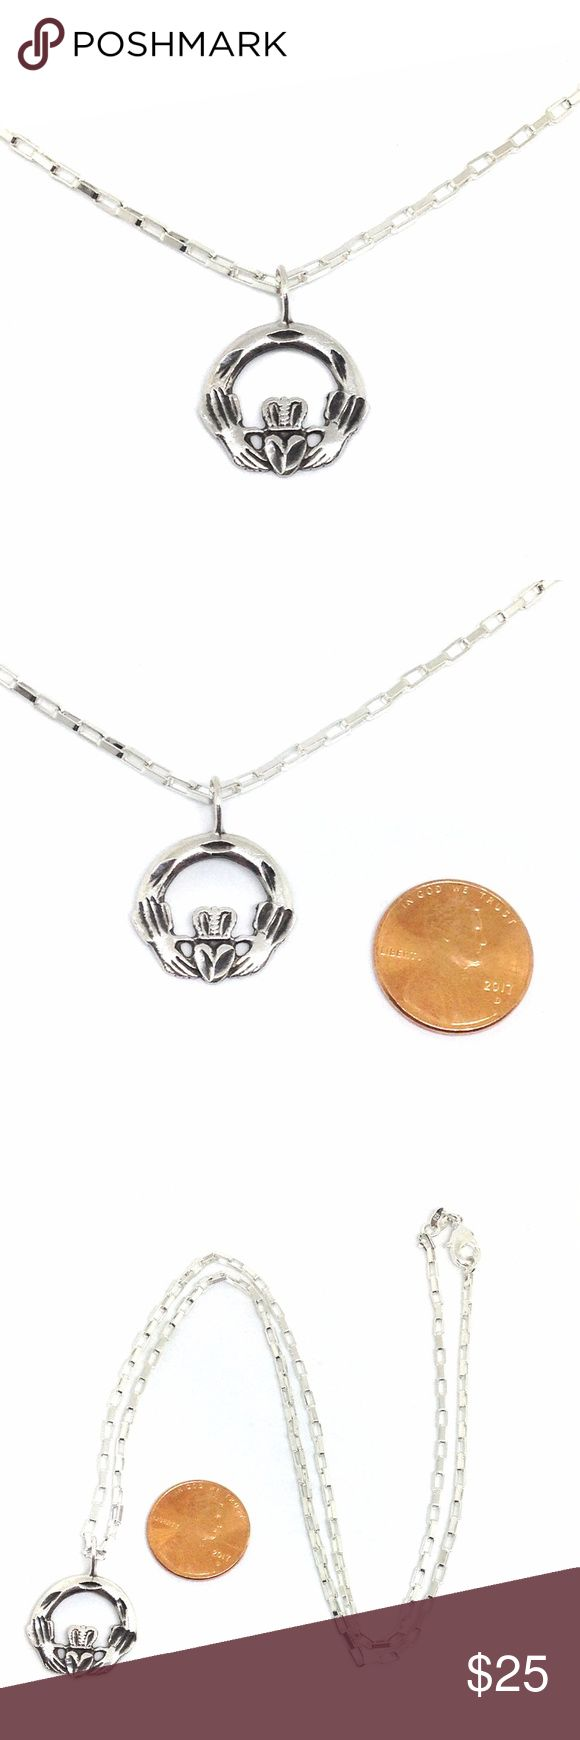 """*SALE* Necklace Claddagh Pendant Sterling Silver Lovely!! Claddagh pendant with long box chain necklace, all in sterling silver. Pendant is approx 1"""" tall with bail. 3/4"""" wide. 1.2mm thick. Stamped '925'. Weight 2 grams. Sterling silver 2mm wide long box chain, 20"""" length. Stamped '925'. Mint condition. The Claddagh is an Irish symbol for love (heart), loyalty (crown) and friendship (hands). Perfect on its own or layered with other necklaces. Sweet! Vintage Jewelry Necklaces"""